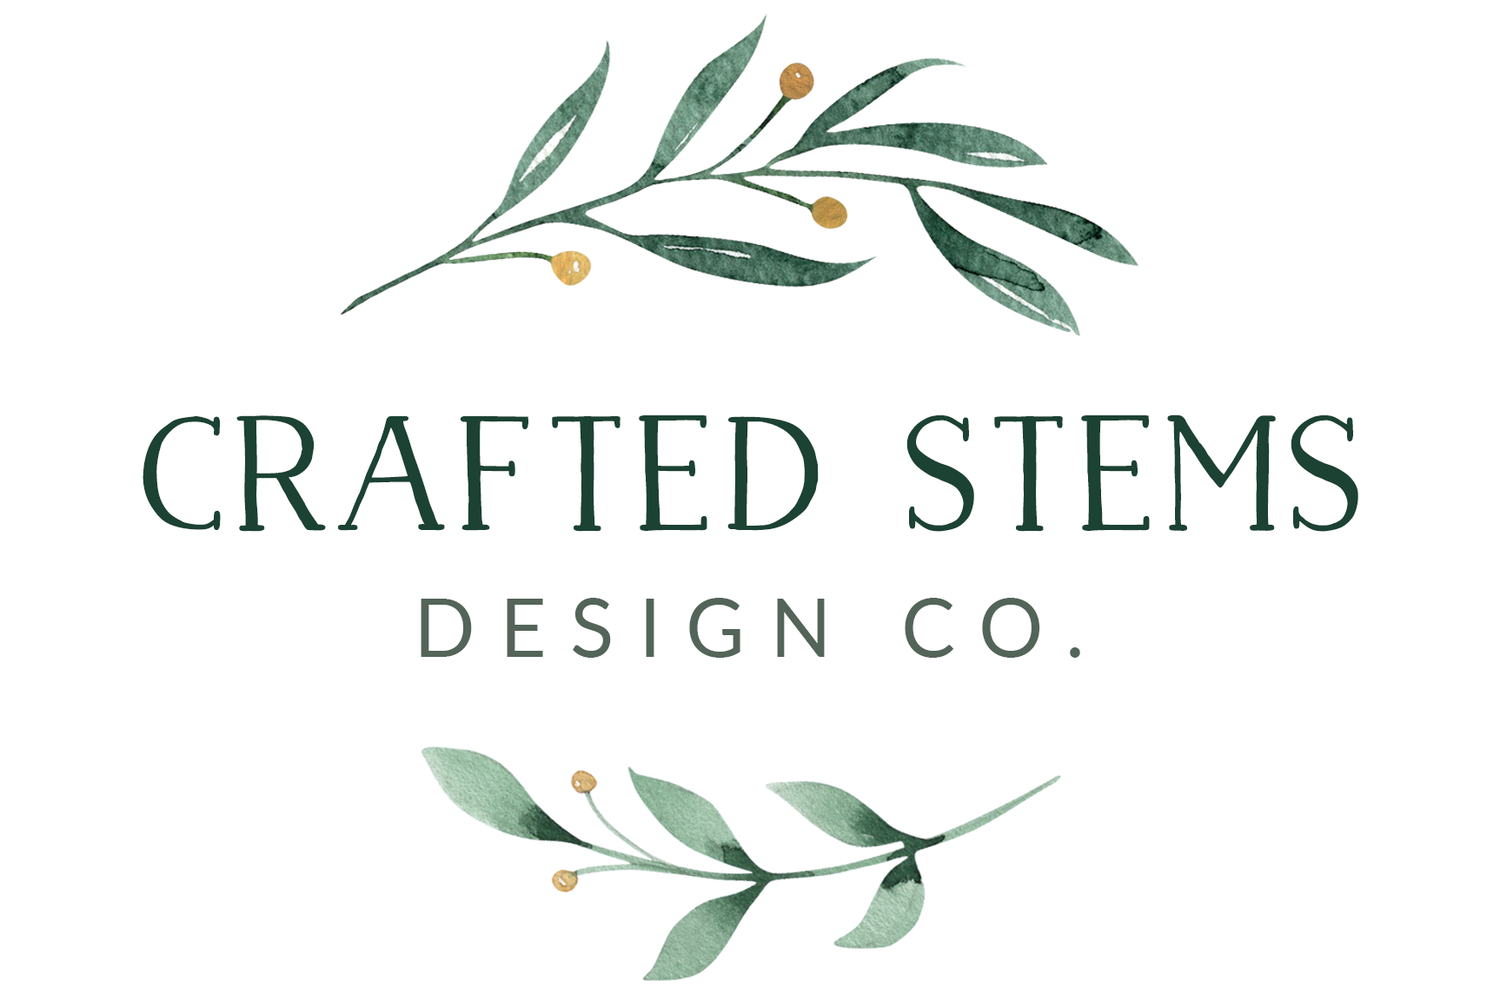 Crafted Stems Design